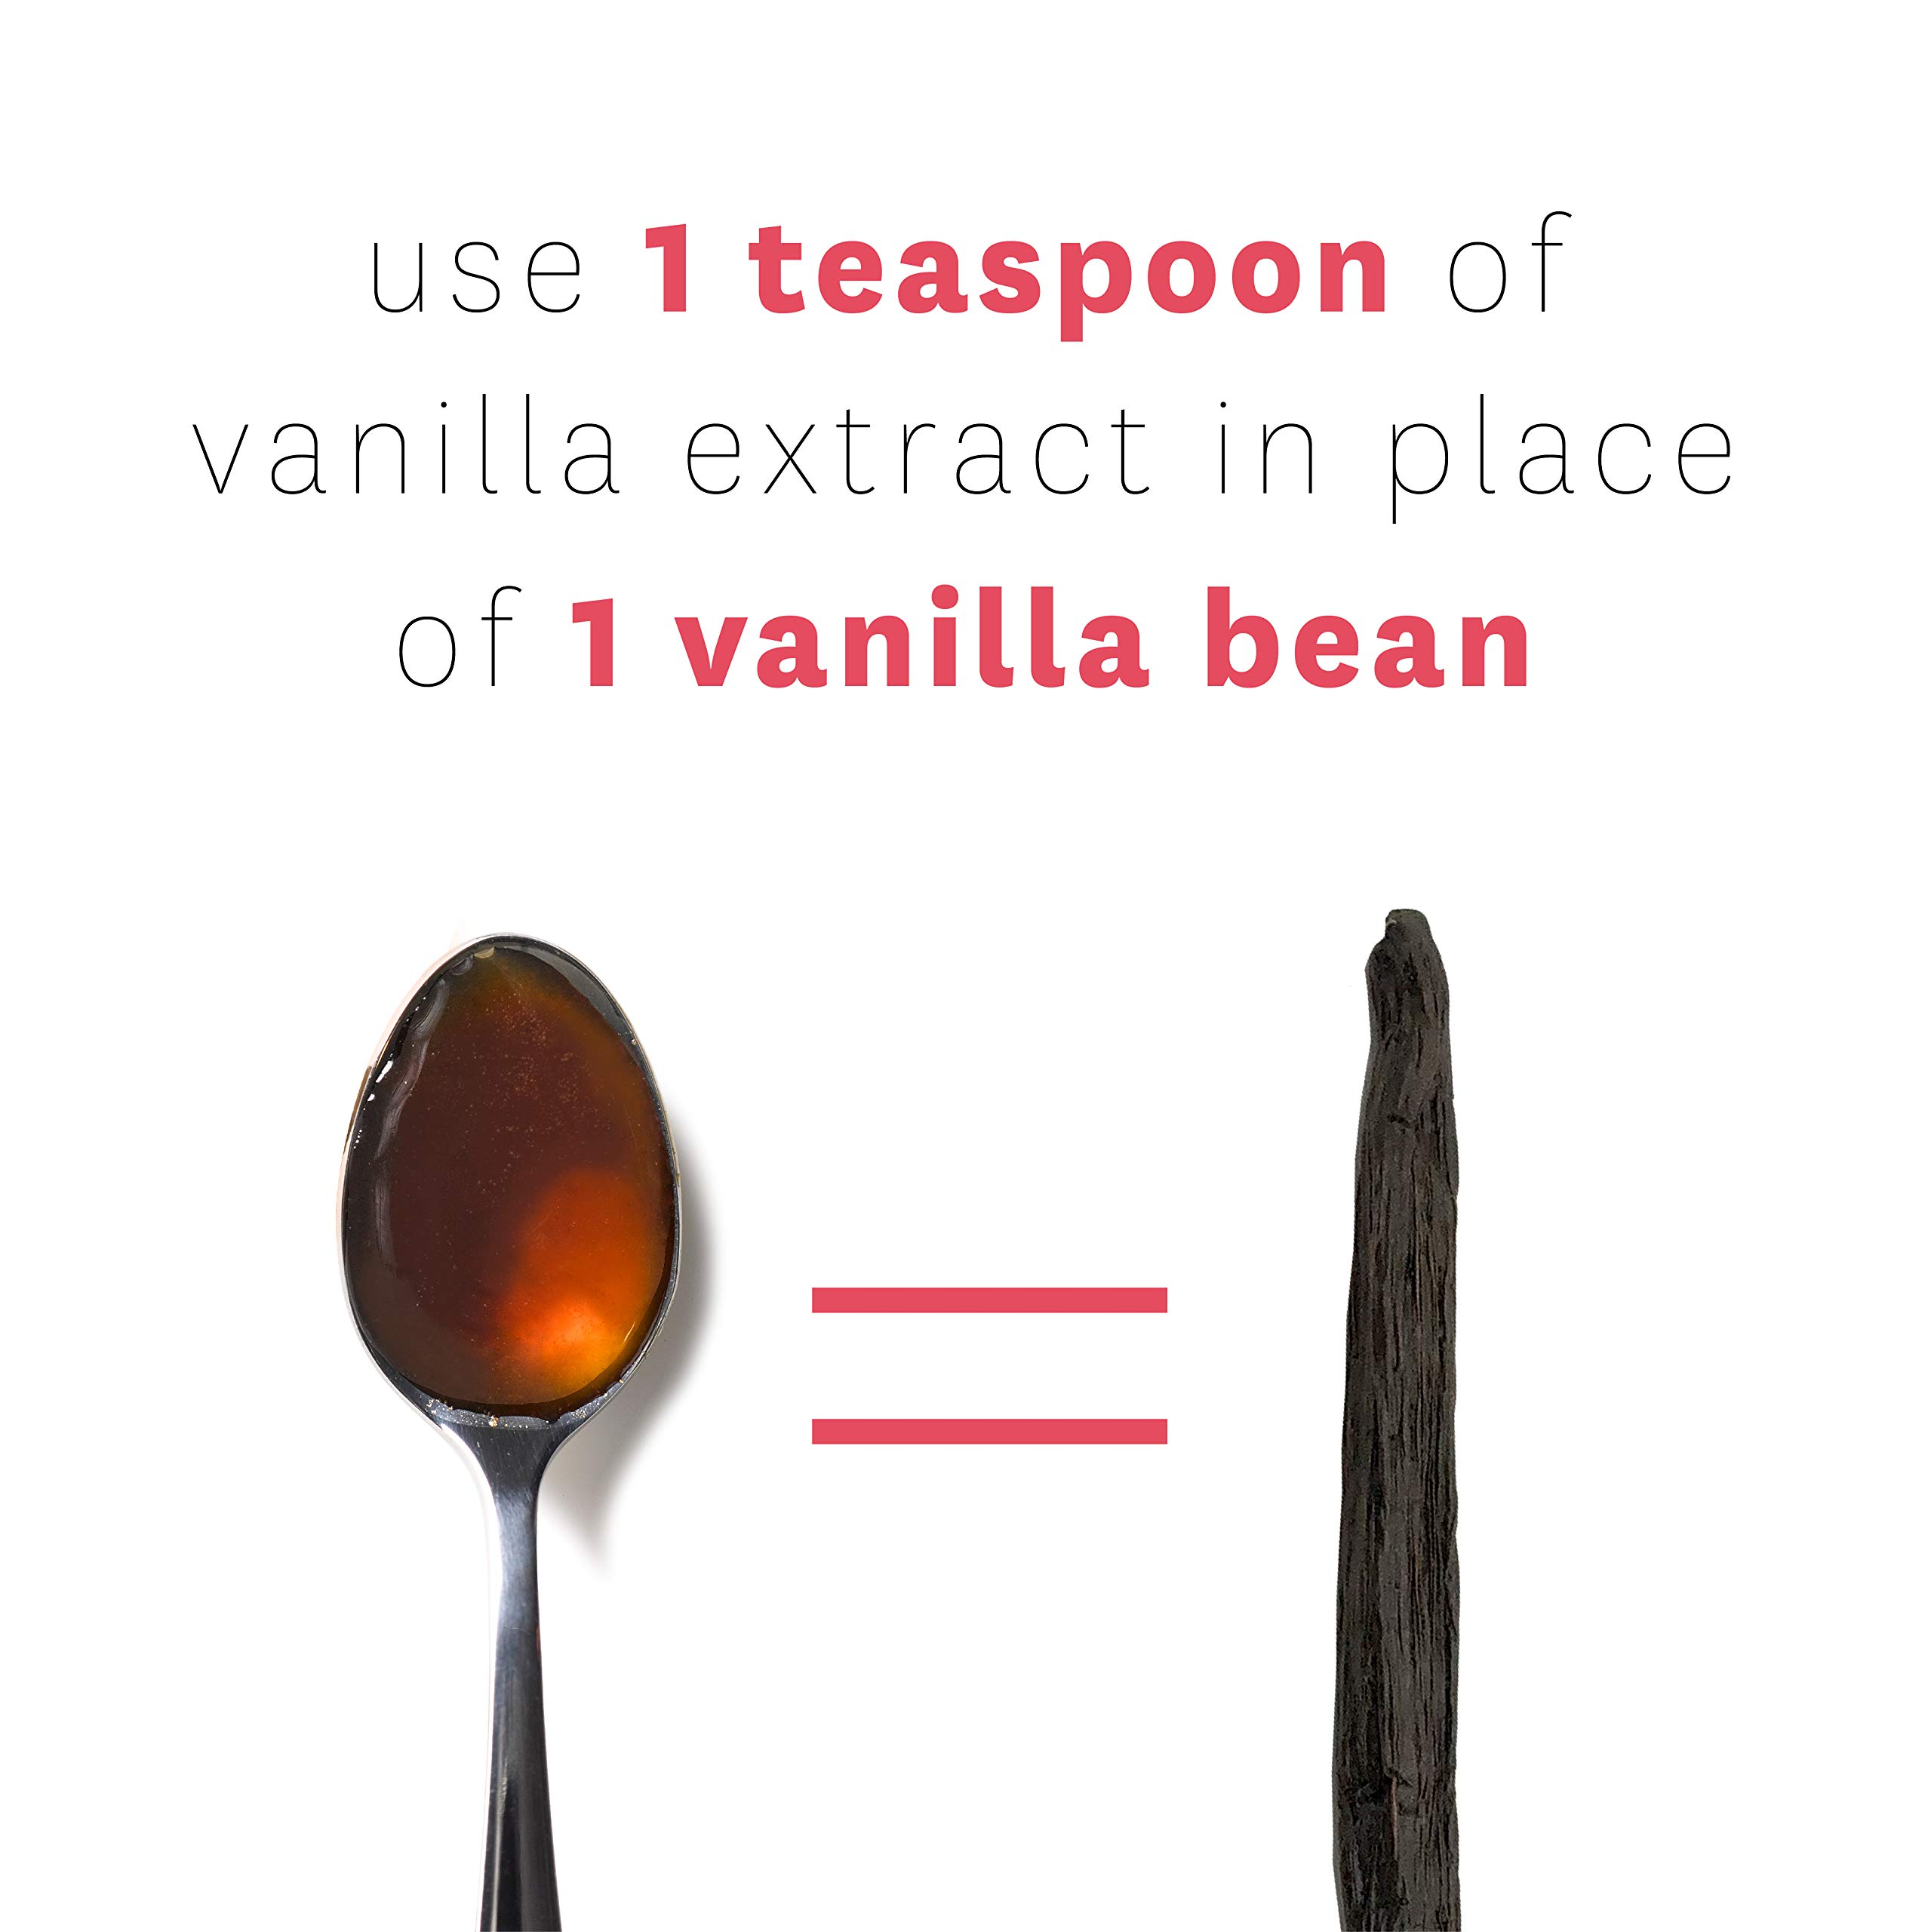 Pure Vanilla Extract for Baking - Gourmet Quality Organically Grown, No Sugar, No Imitation Flavors, No Chemicals or Synthetic Flavors - Heilala Vanilla is 100% Pure Vanilla Extract 16.90 fl oz by Heilala Vanilla (Image #3)